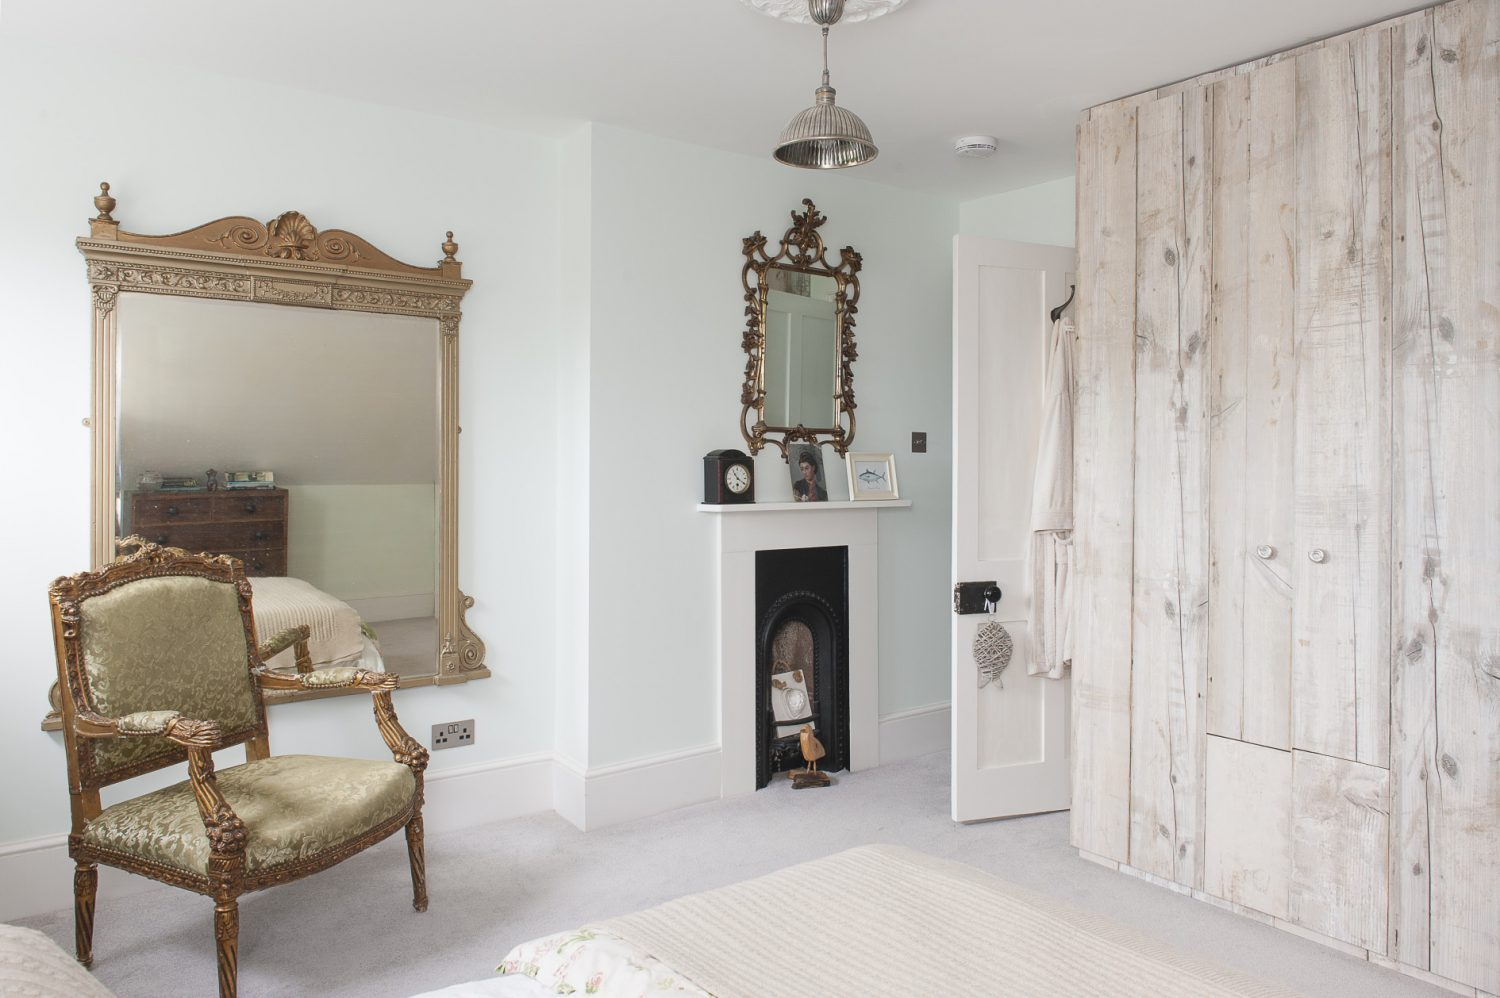 Louise has created a clever visual trick by choosing wood effect wallpaper to cover the built-in wardrobe